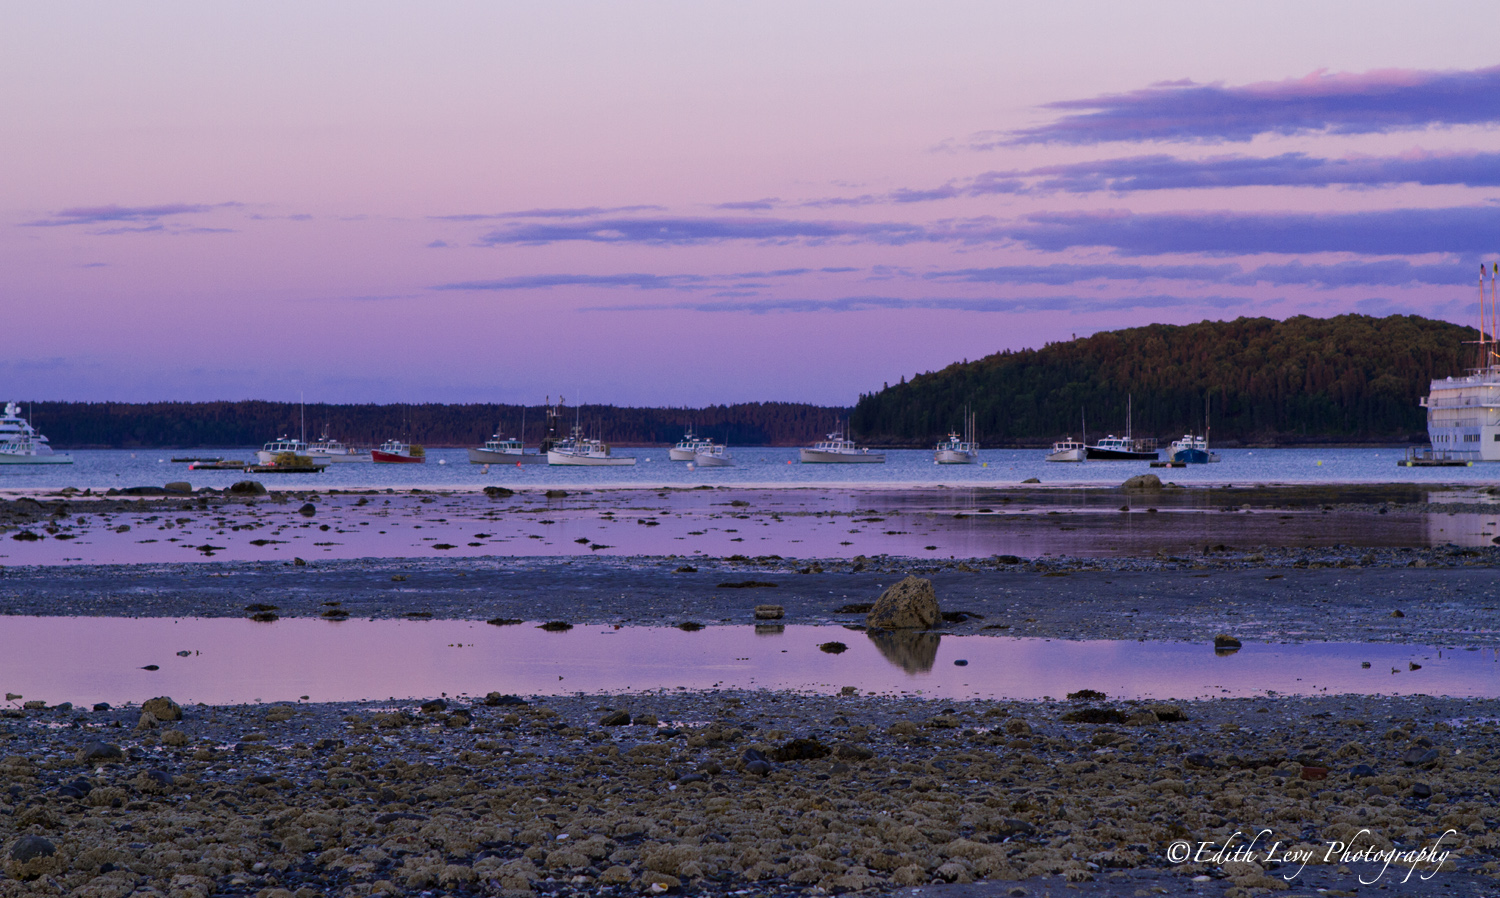 Low tide and a colourful sky at sunset in Bar Harbour.